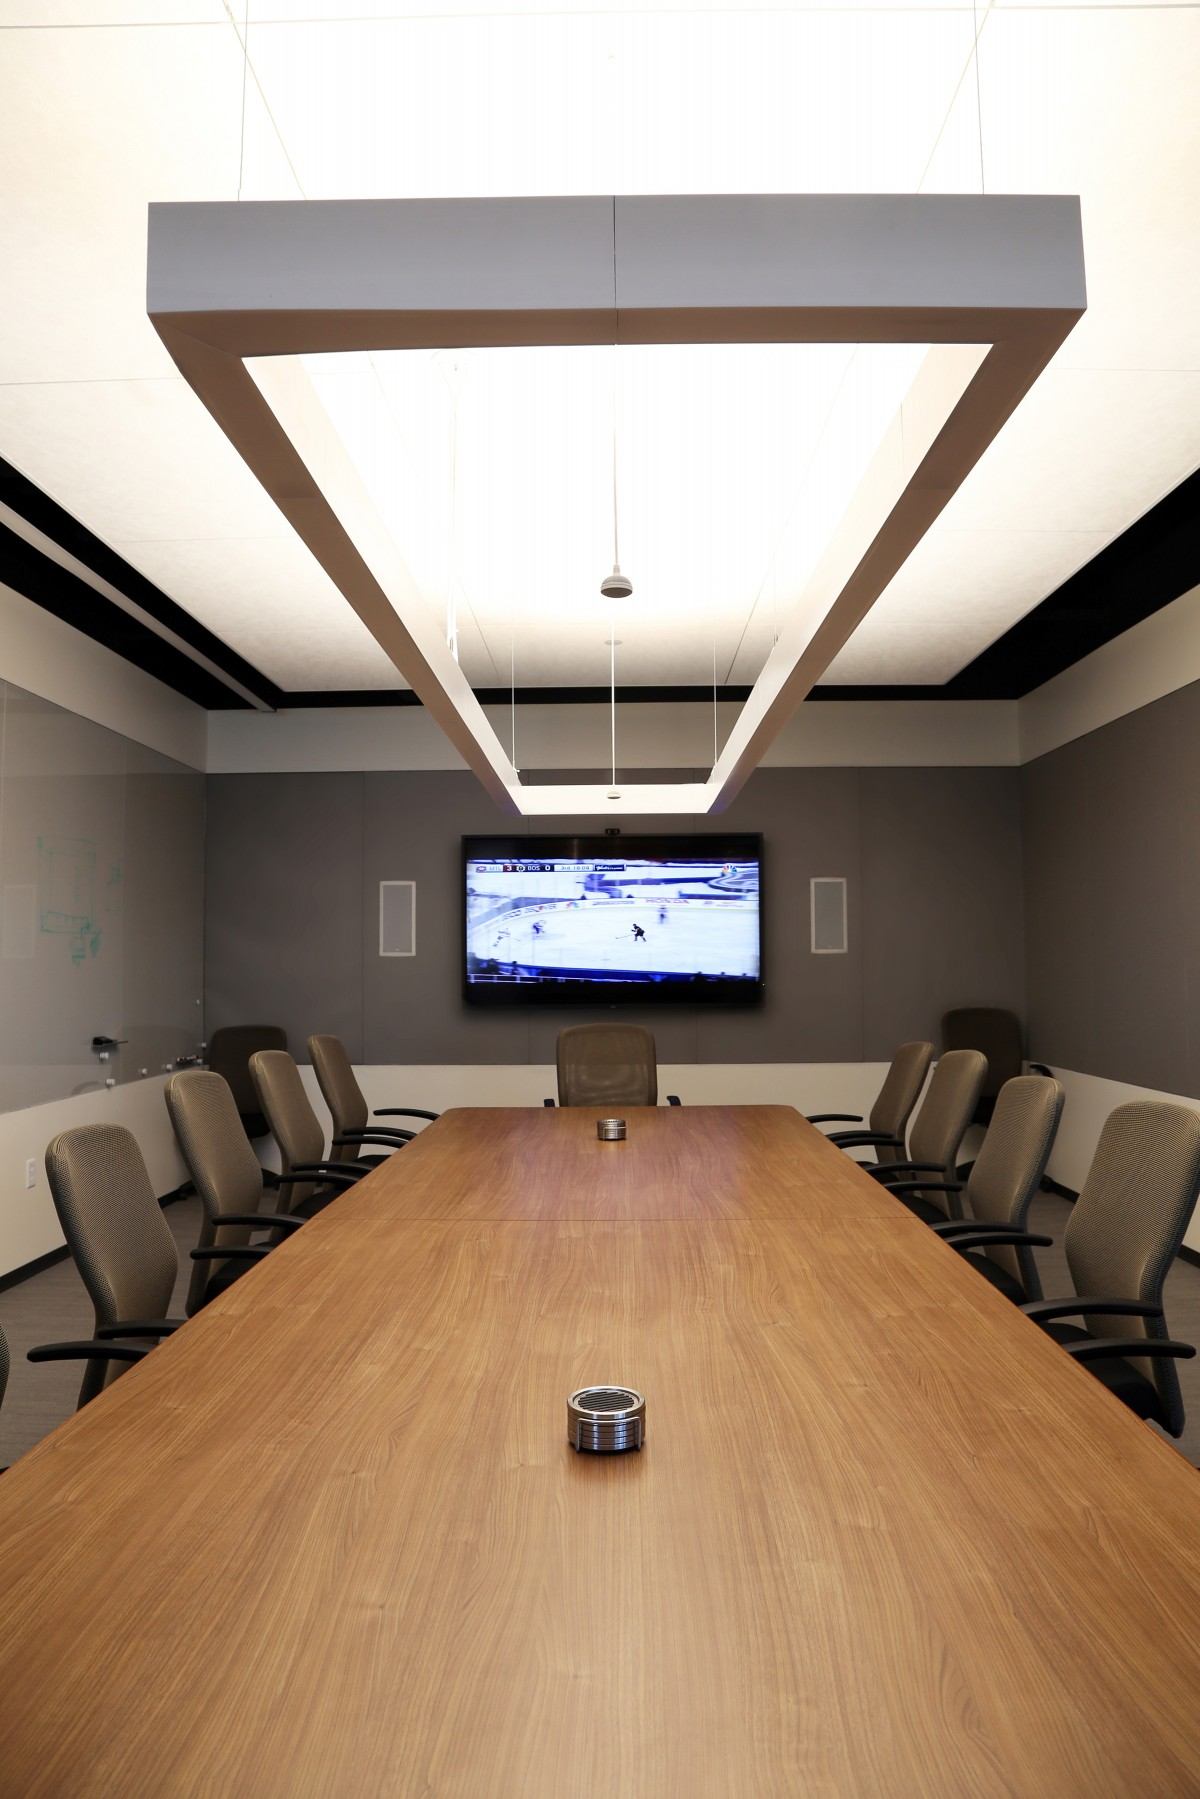 In the boardroom, a Lumenline direct / indirect rectangle pendant features an uplight and downlight that are controlled separately and integrated into preset scenes.